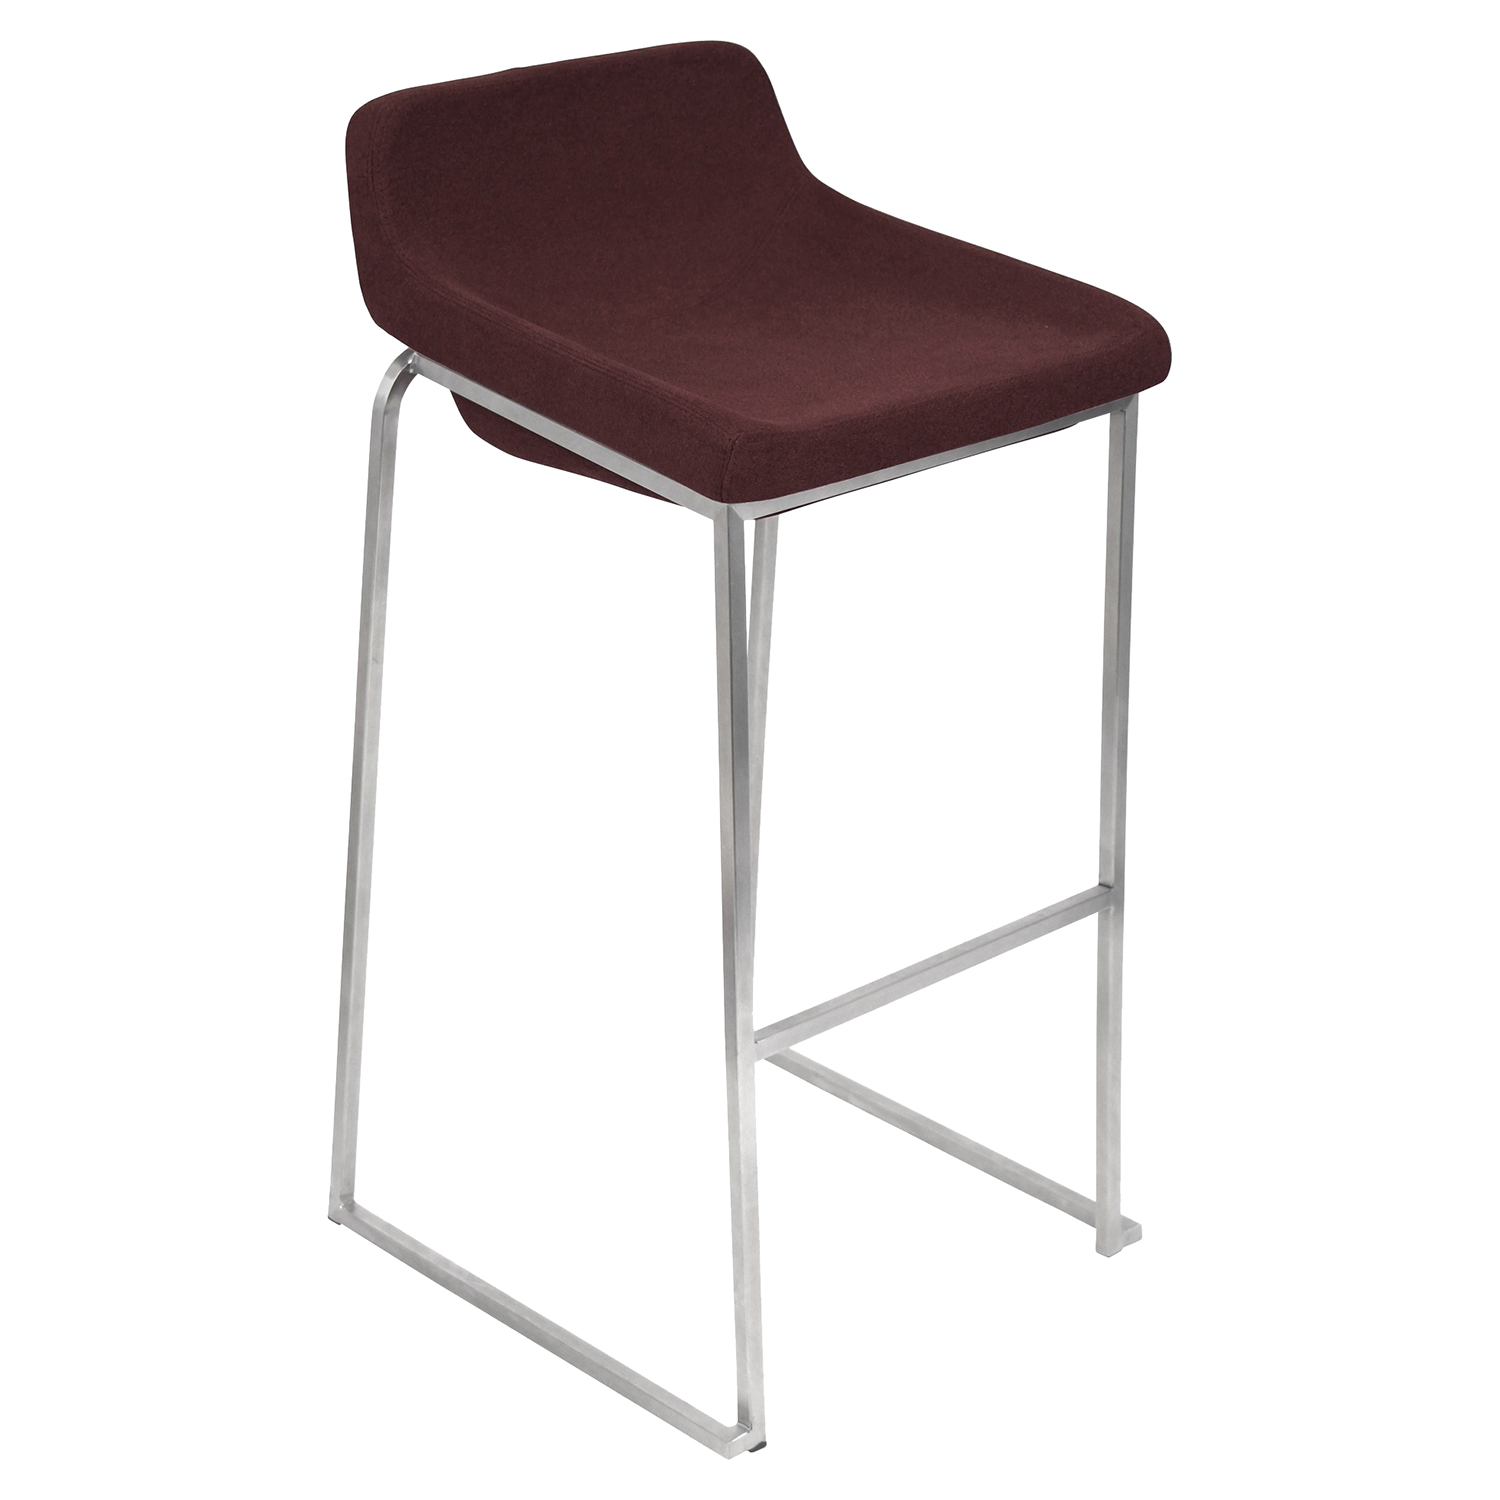 Drop-In Stackable Barstool - Burgundy (Set of 2)